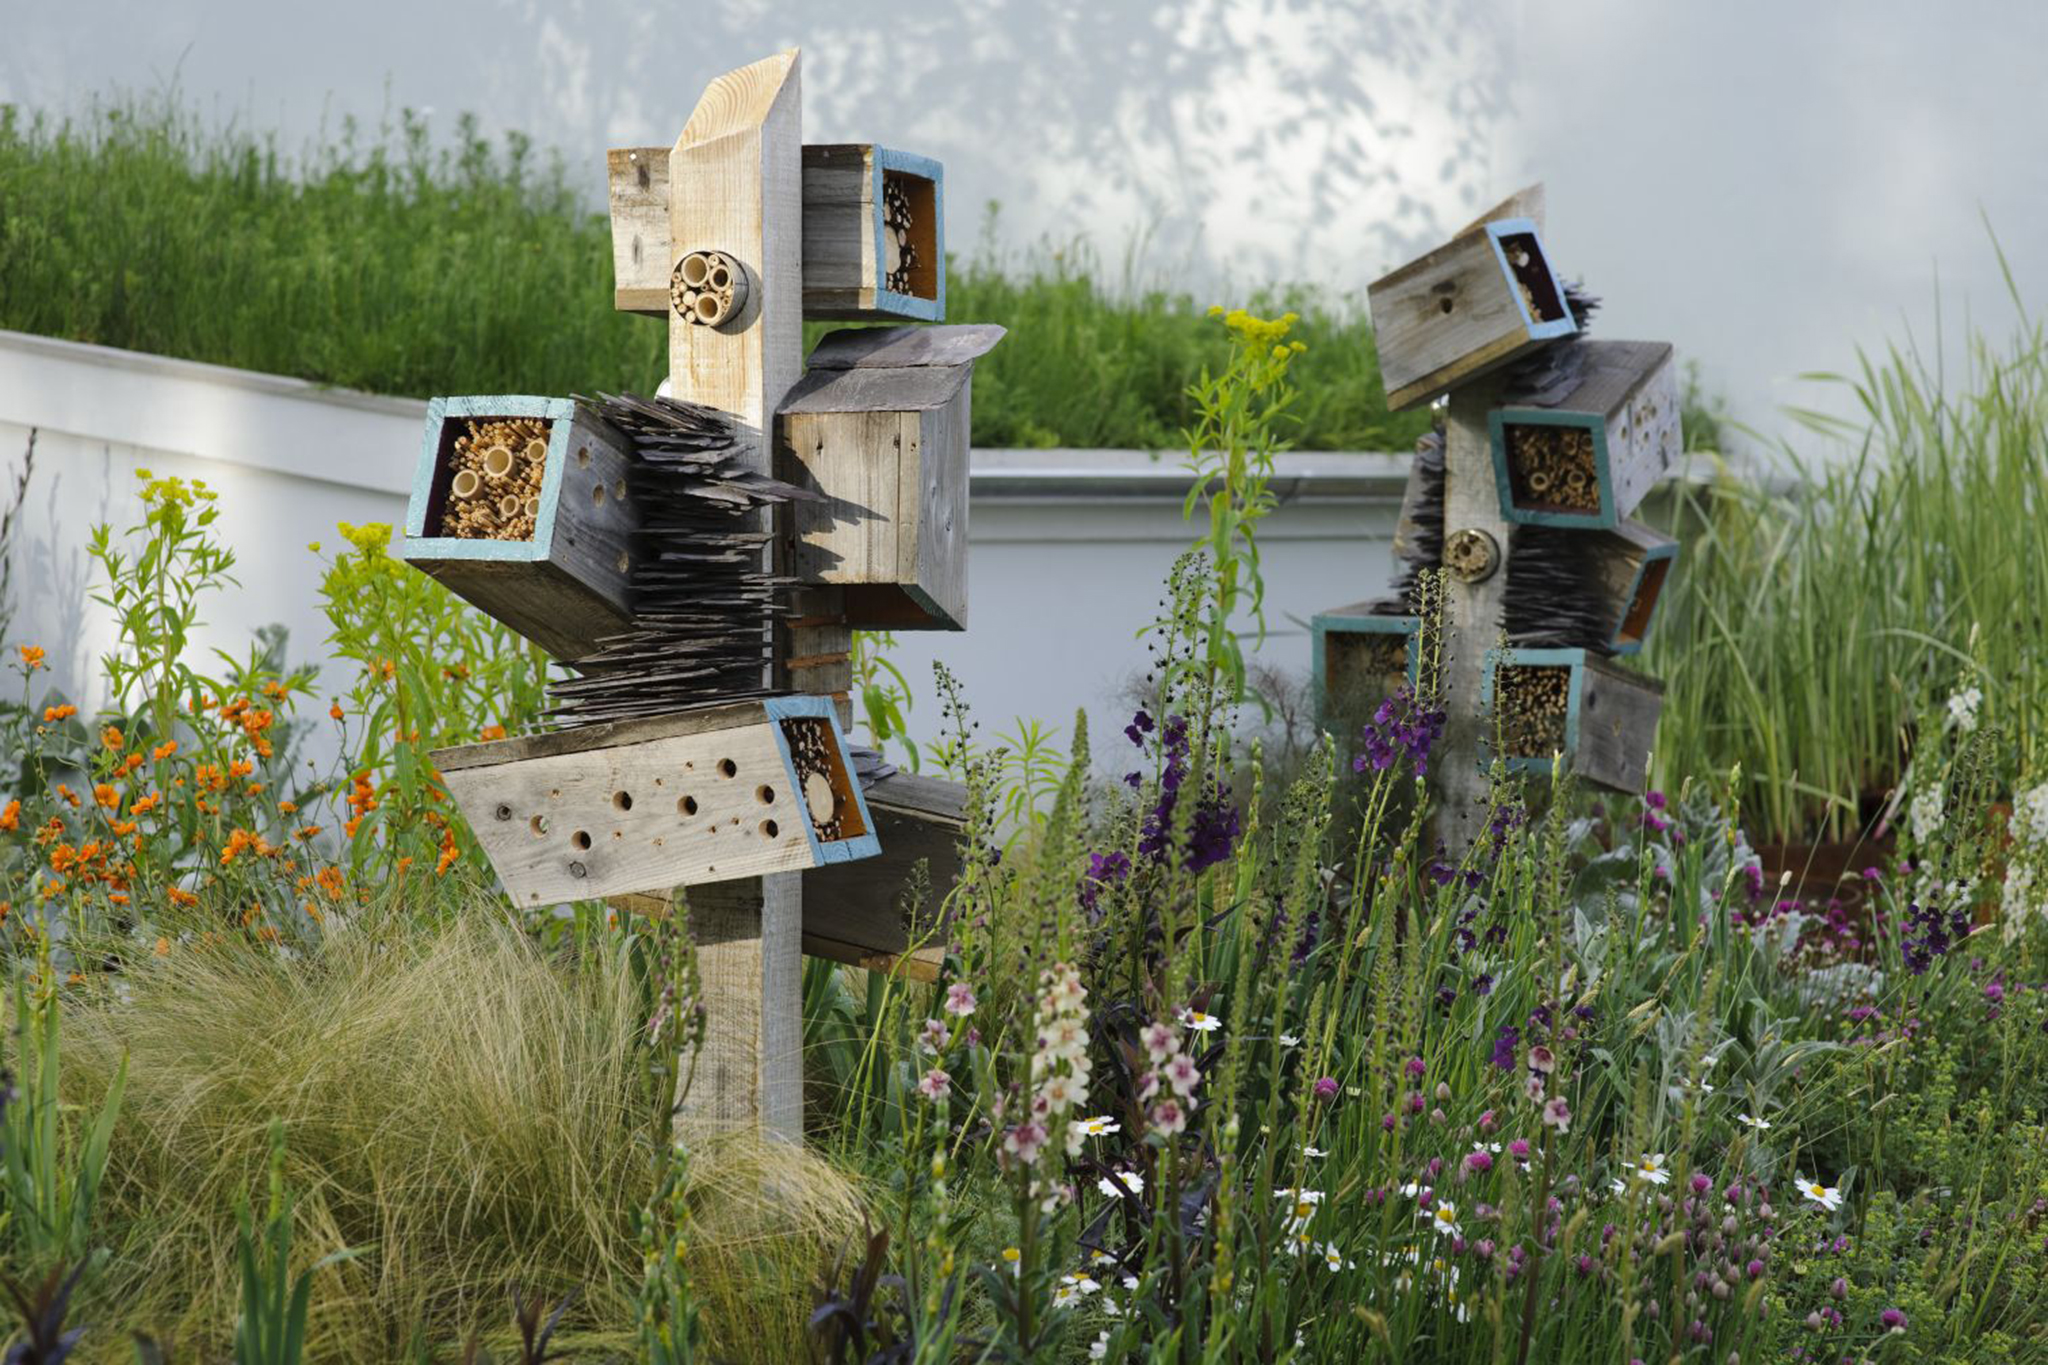 nine-bee-hotel-ideas-in-pictures